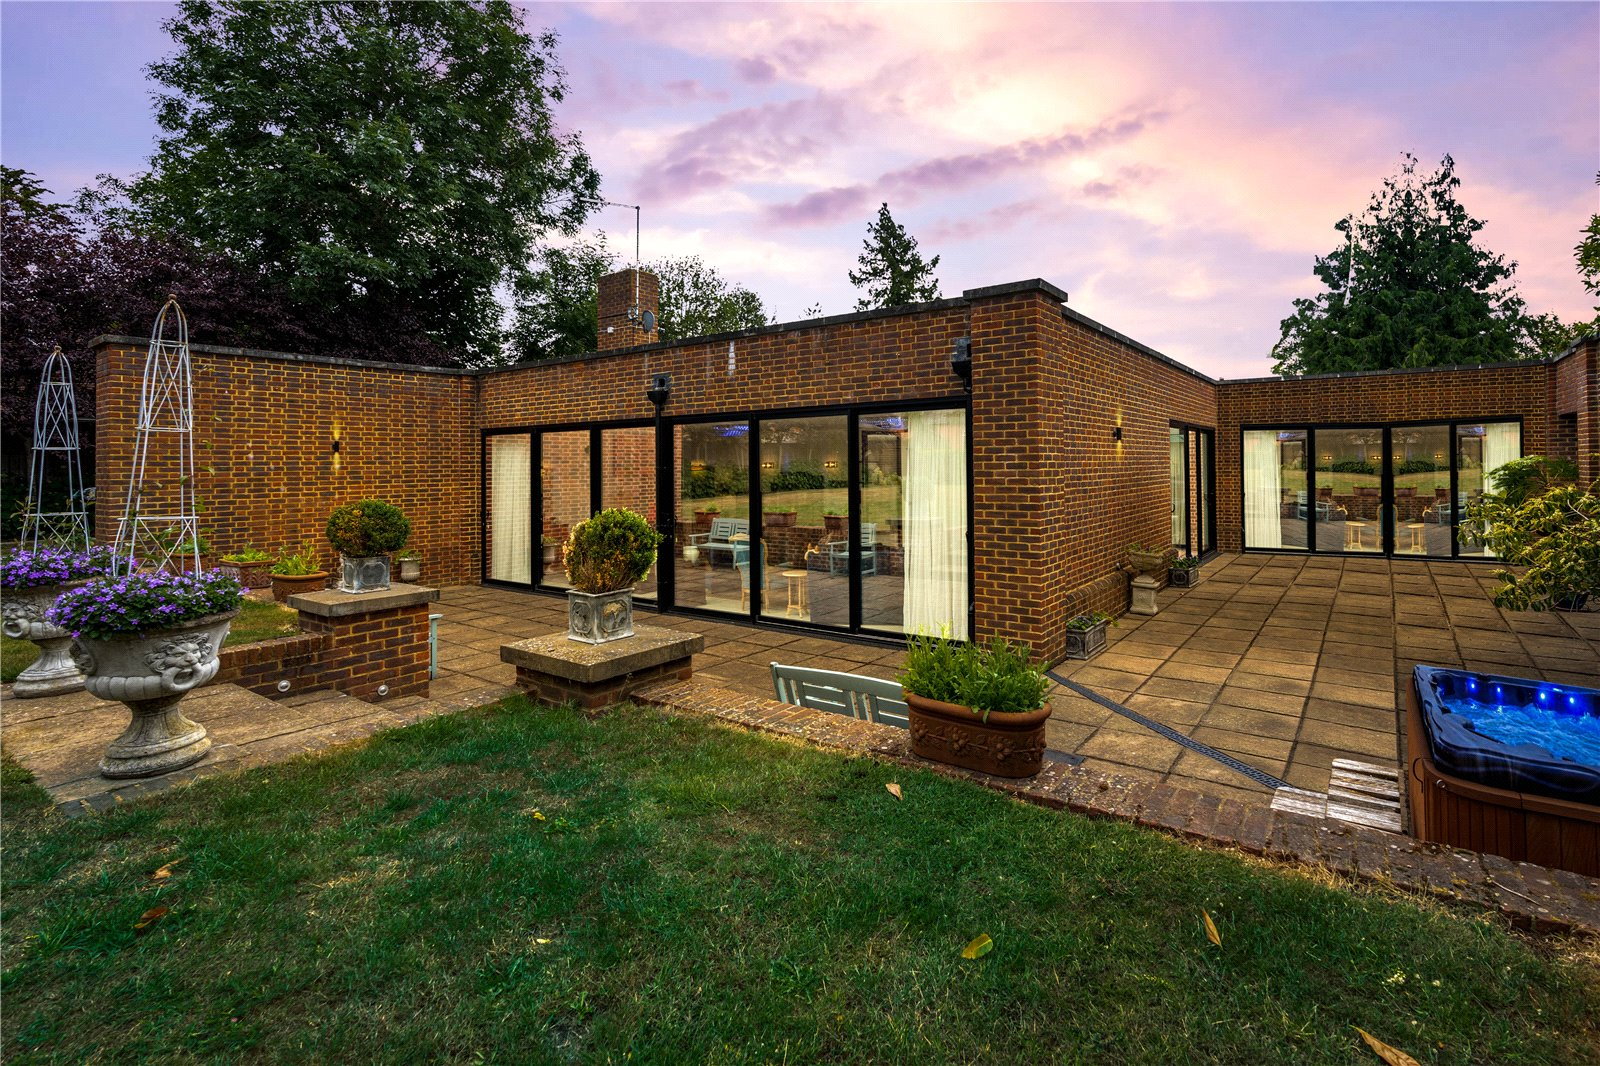 3 bed house for sale in Eyhorne Street, Hollingbourne 1